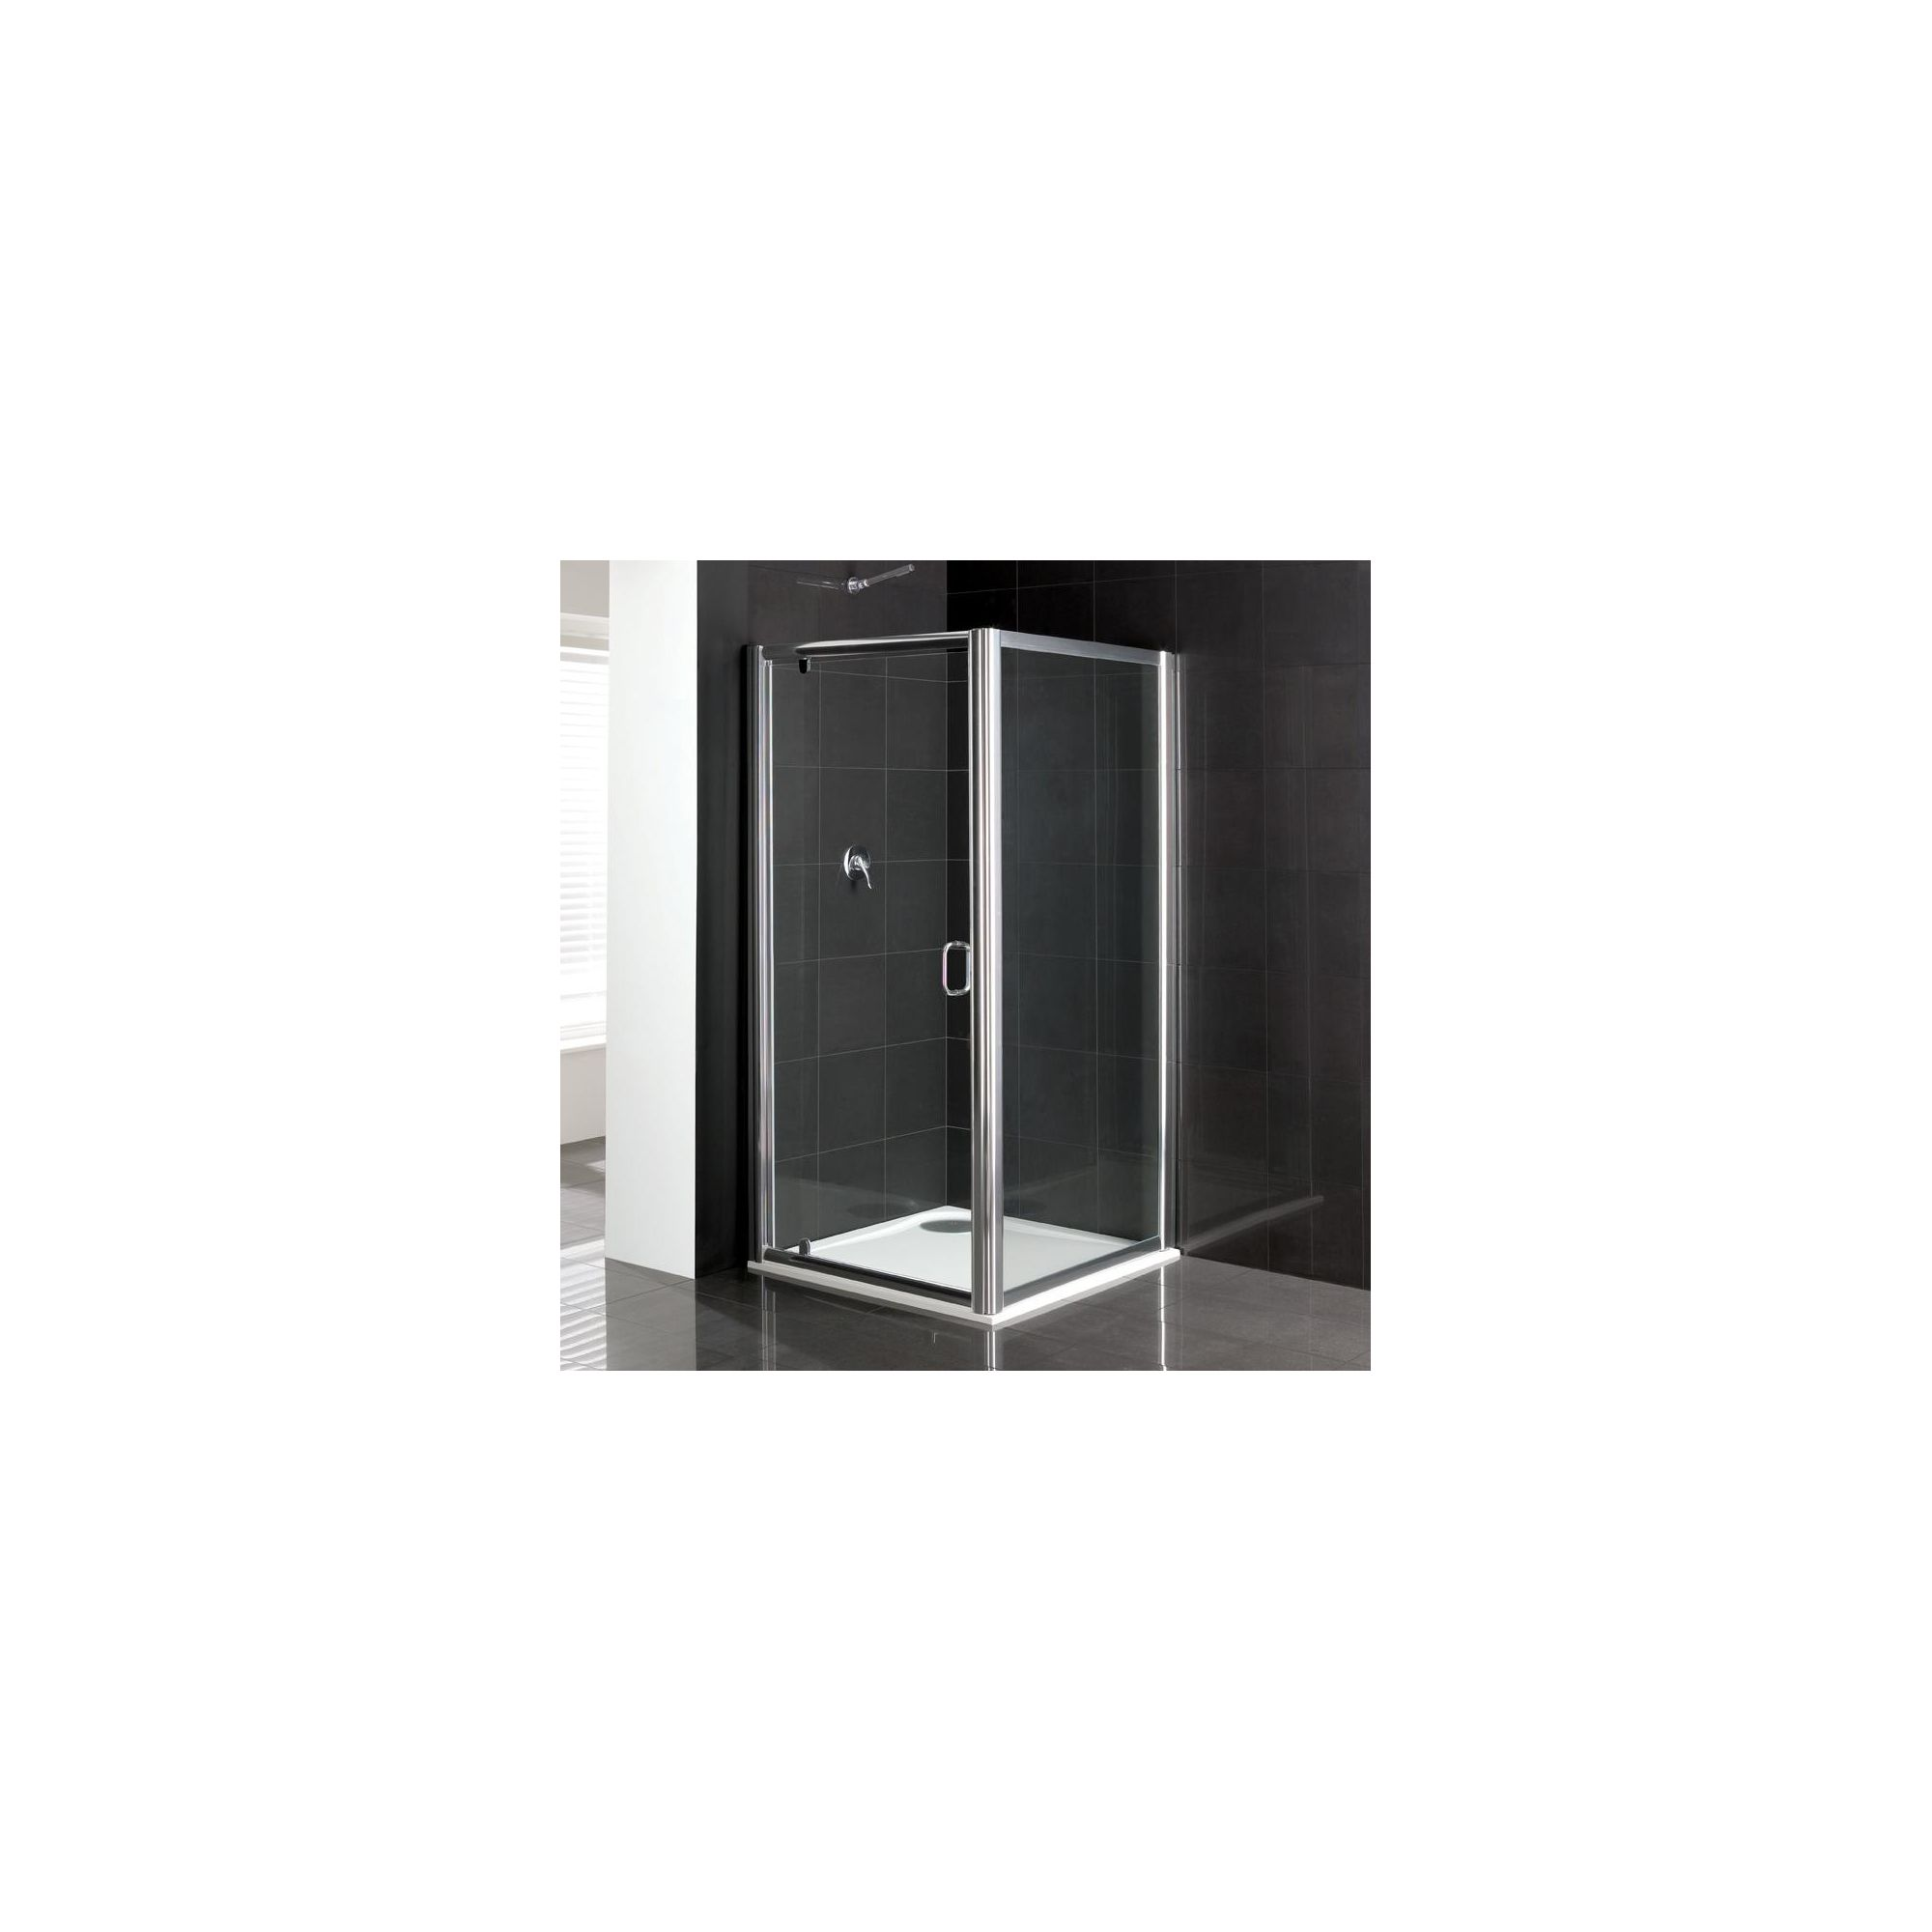 Duchy Elite Silver Pivot Door Shower Enclosure with Towel Rail, 900mm x 900mm, Standard Tray, 6mm Glass at Tesco Direct